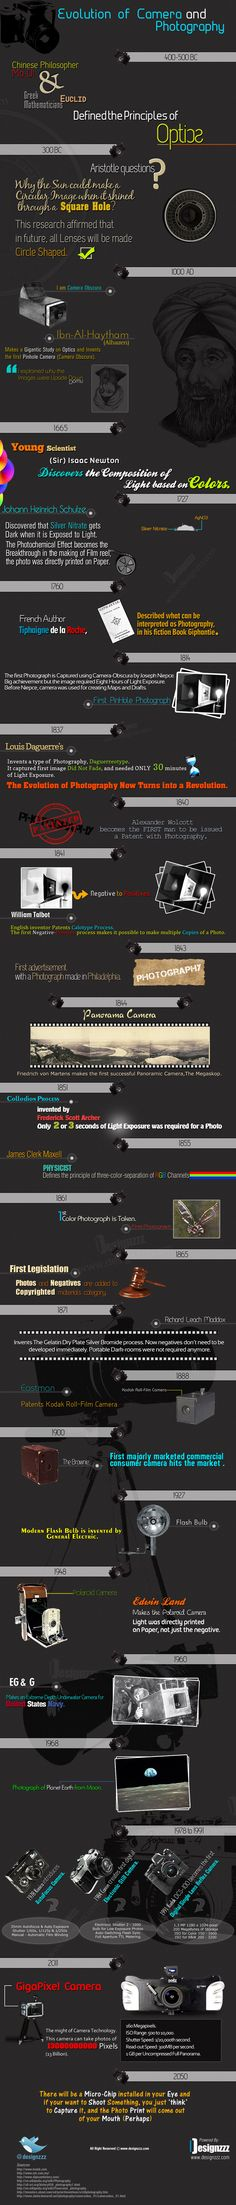 An infographic describing the history of camera and photography. Very interesting stuff for designers, photographers and students.